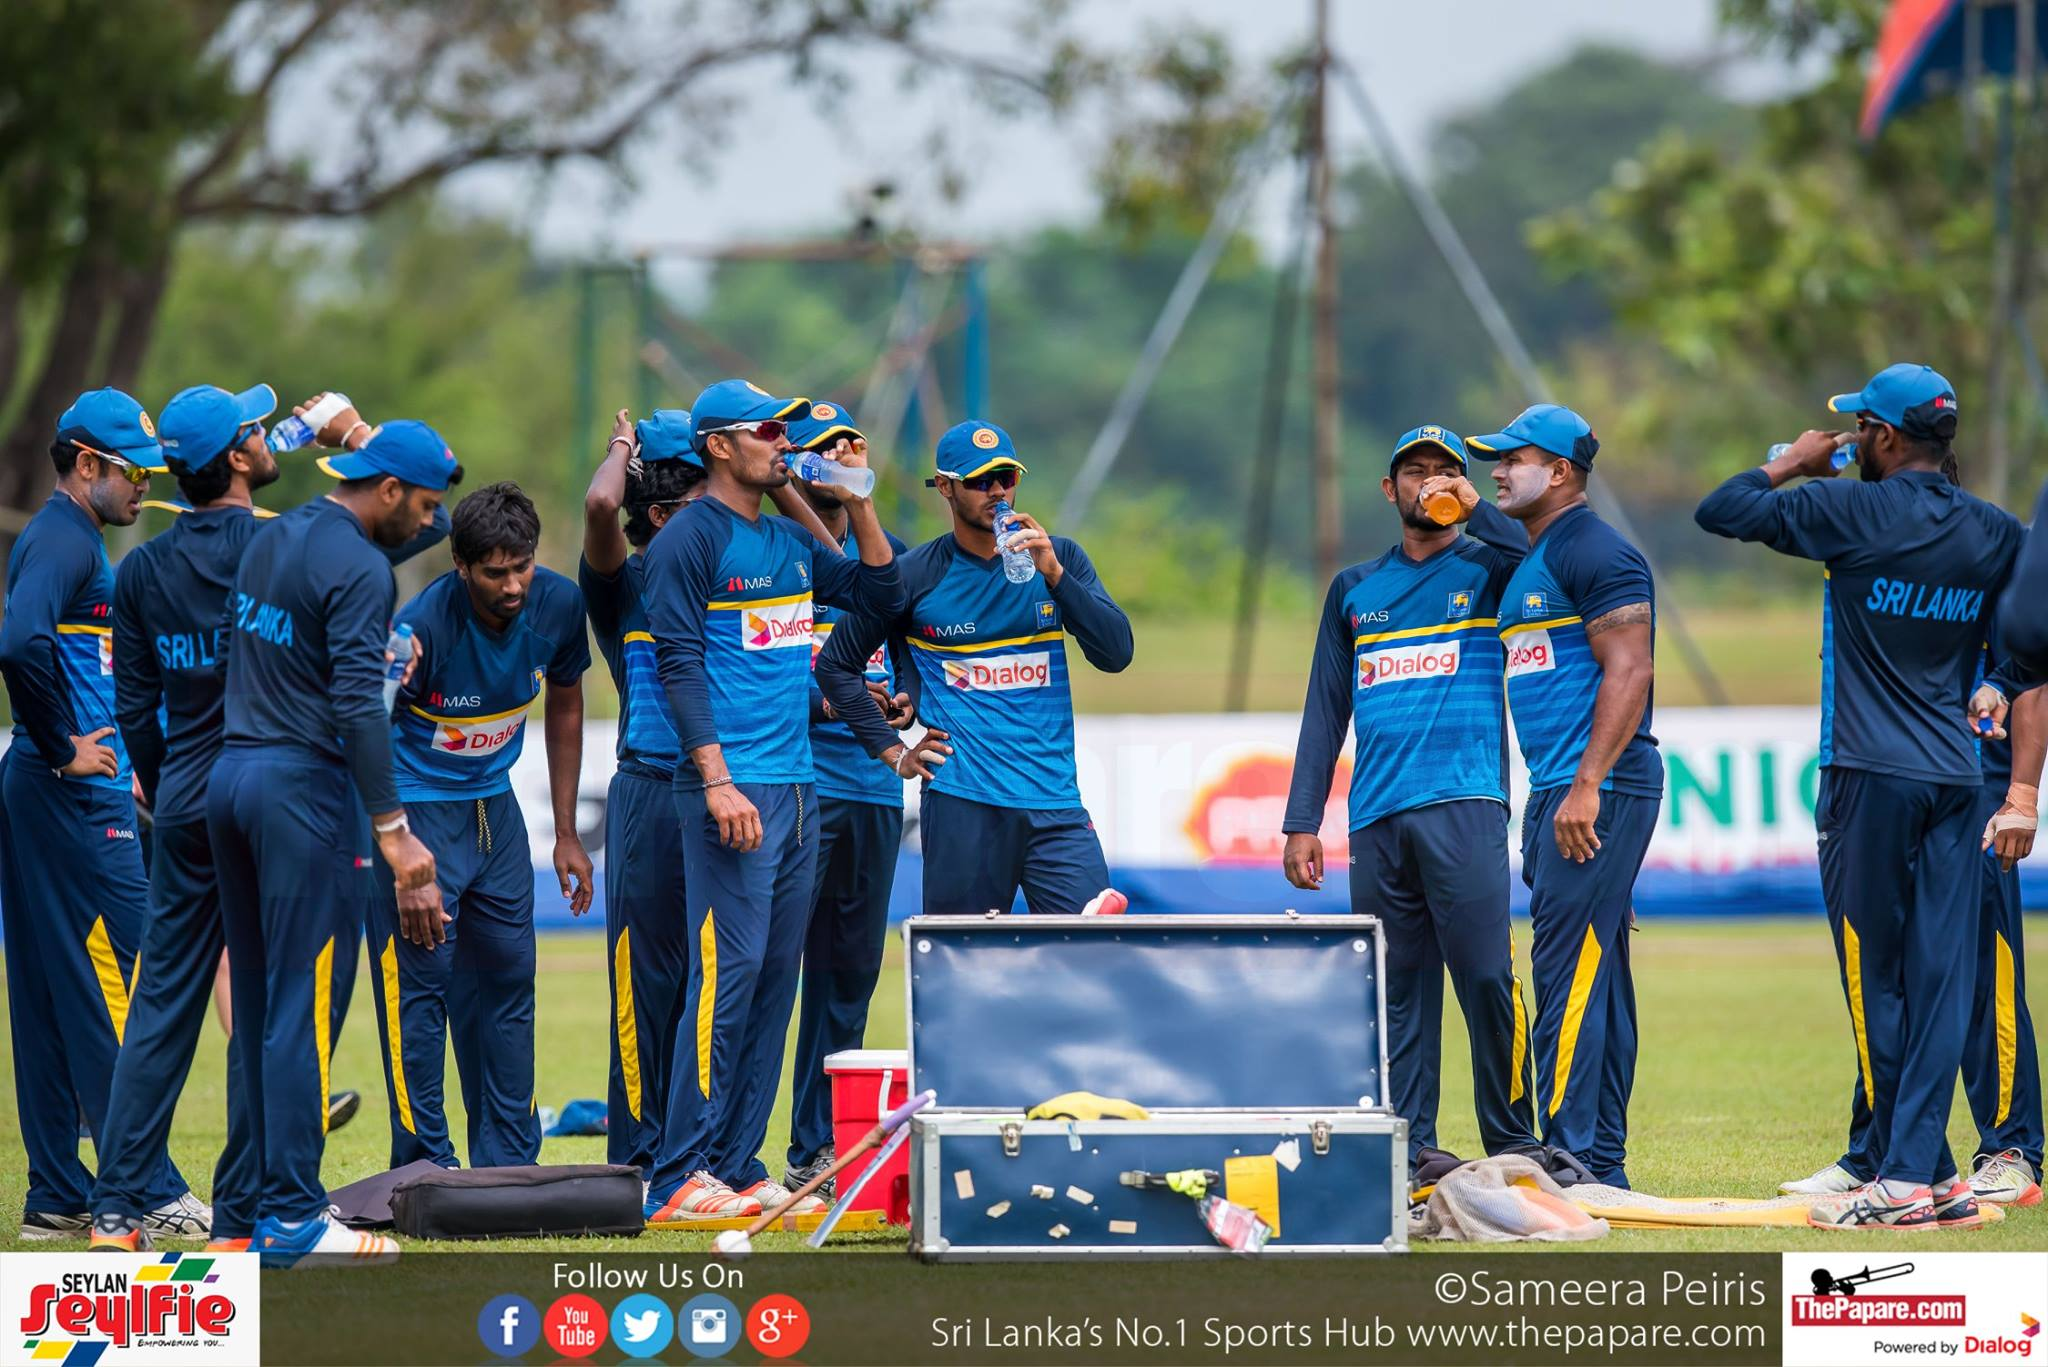 Sri Lanka to train in Diyatalawa & Kandy ahead of Champions Trophy